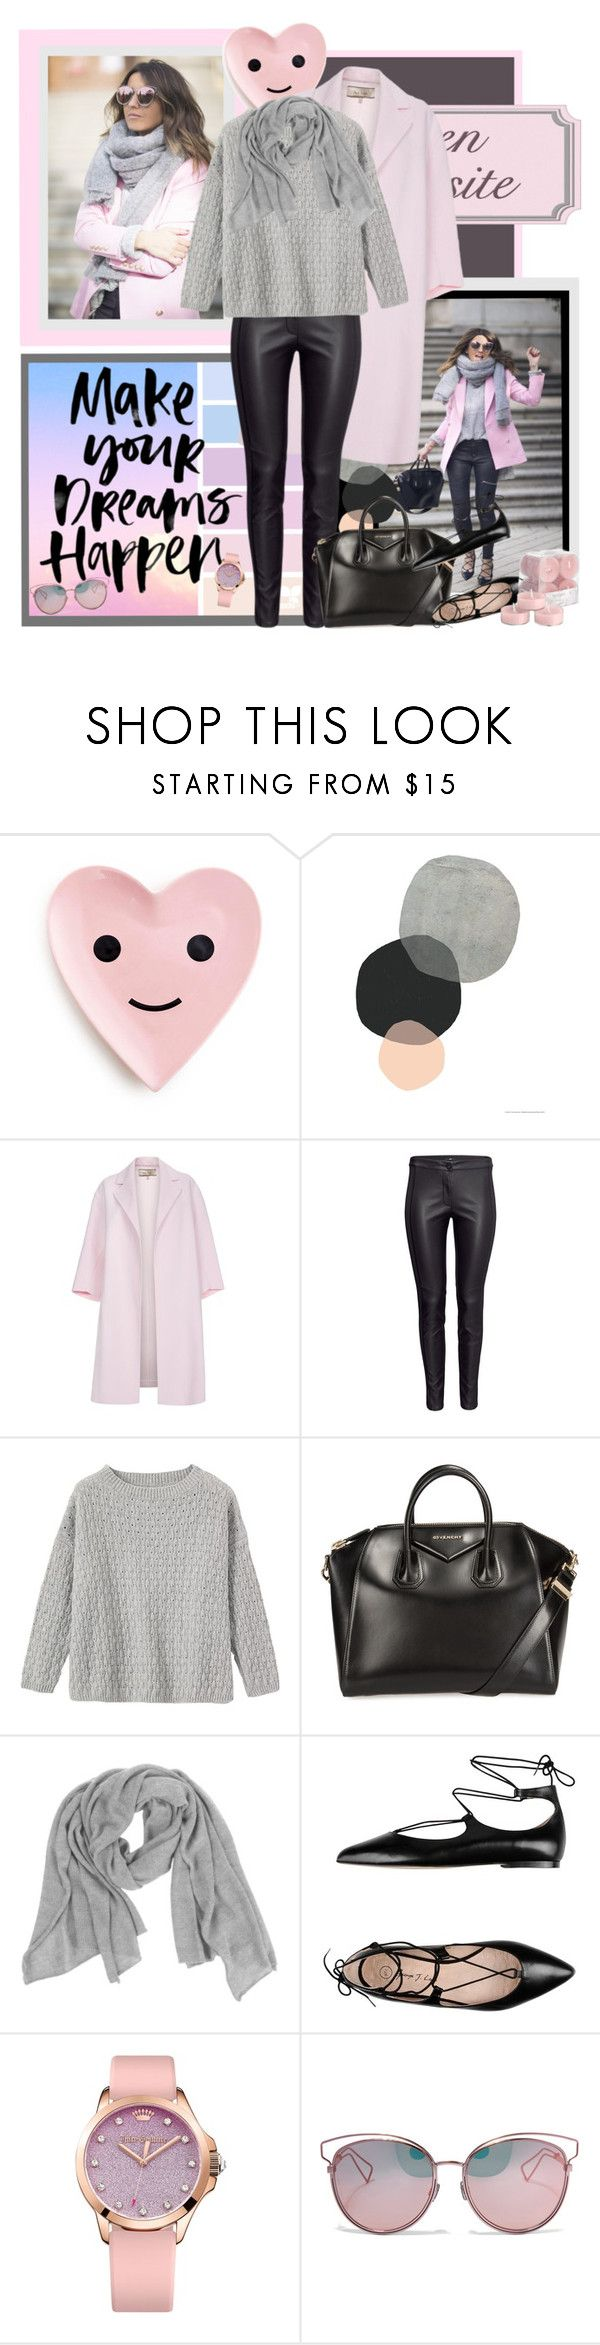 """""""Early Spring) My Love =) 155"""" by rayamokshina ❤ liked on Polyvore featuring Paul Smith, Toast, Givenchy, Samantha Holmes, George J. Love, Juicy Couture, Christian Dior and Pier 1 Imports"""